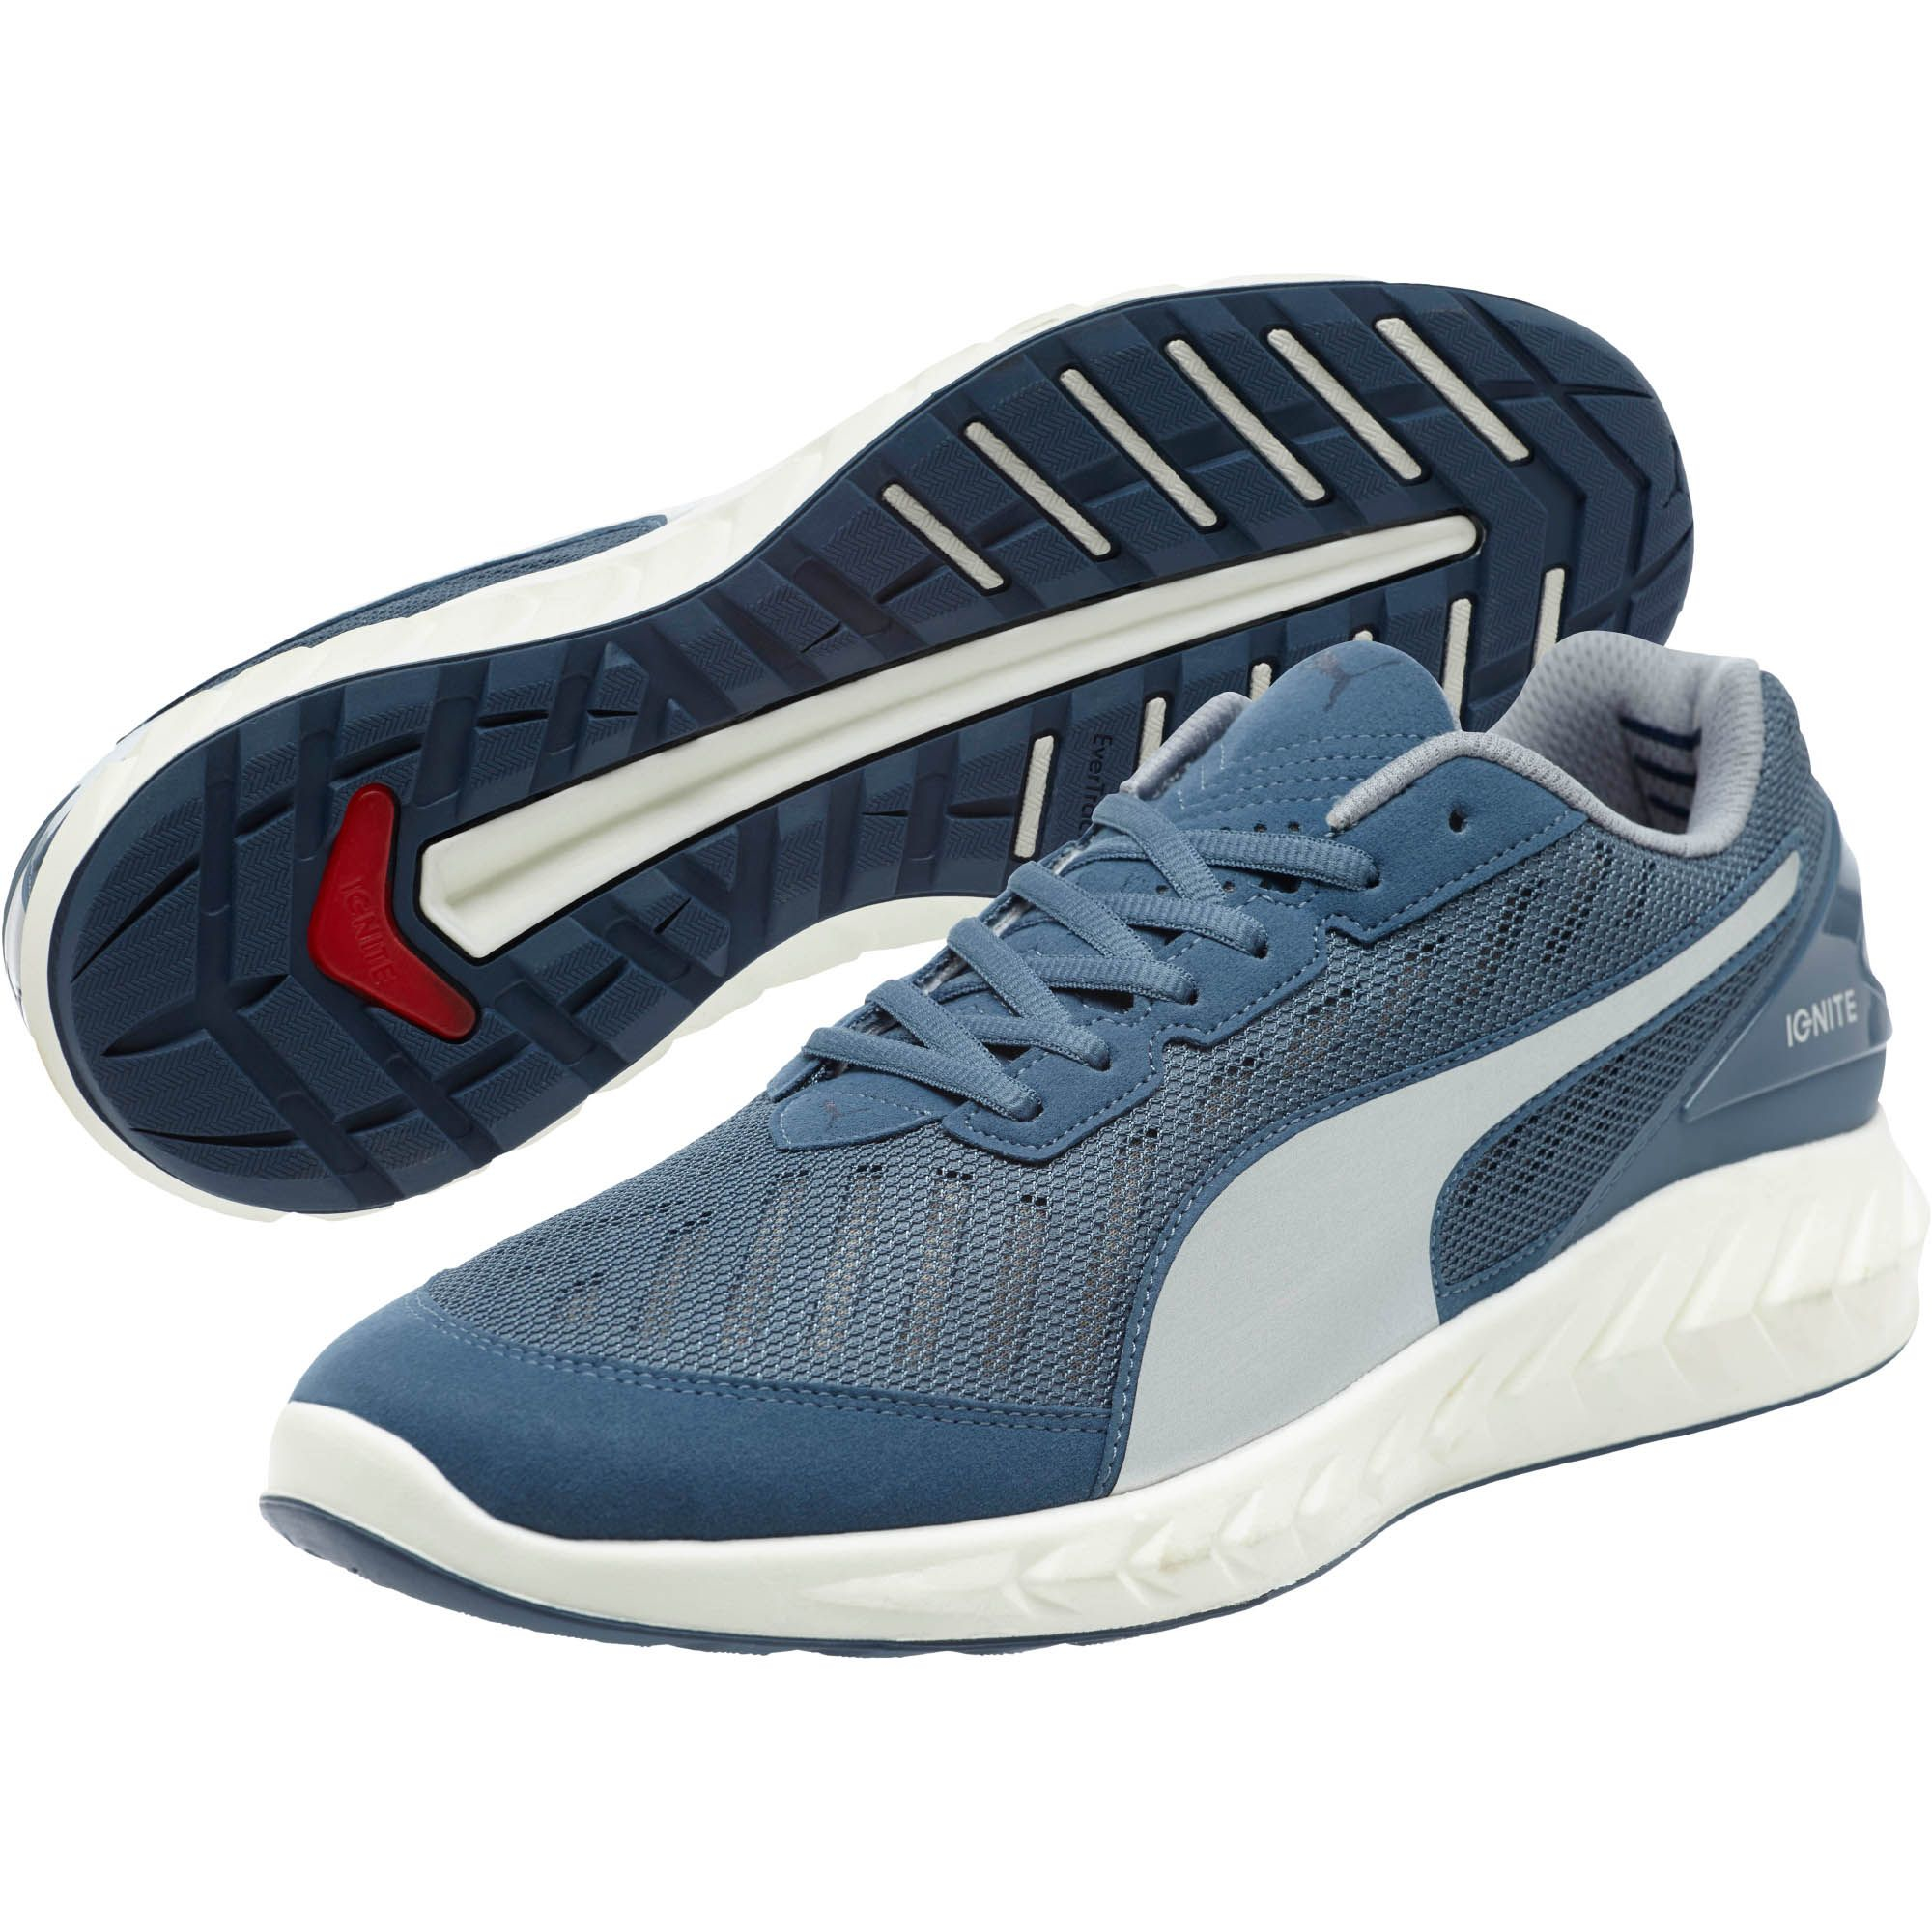 Lyst - PUMA Ignite Ultimate Je11 Men s Running Shoes in Blue for Men 37a153f0a